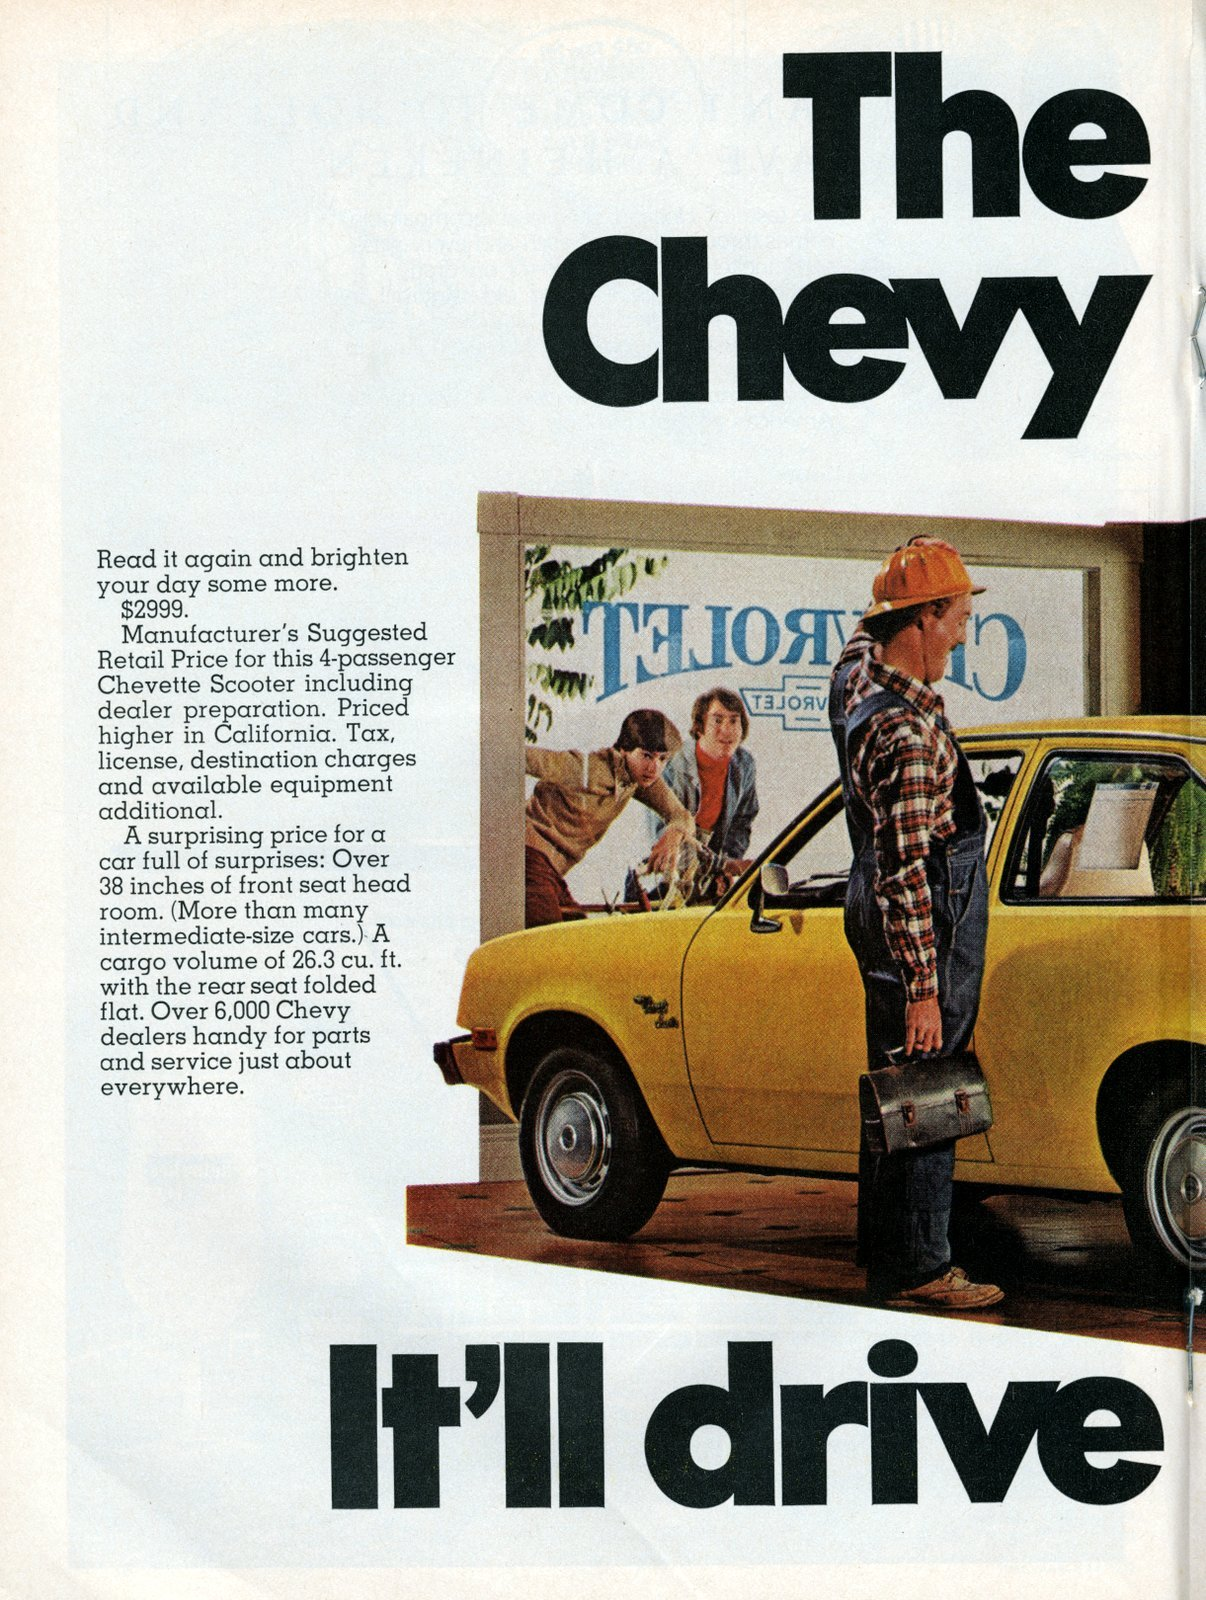 The 2999 Chevy Chevette (1977)